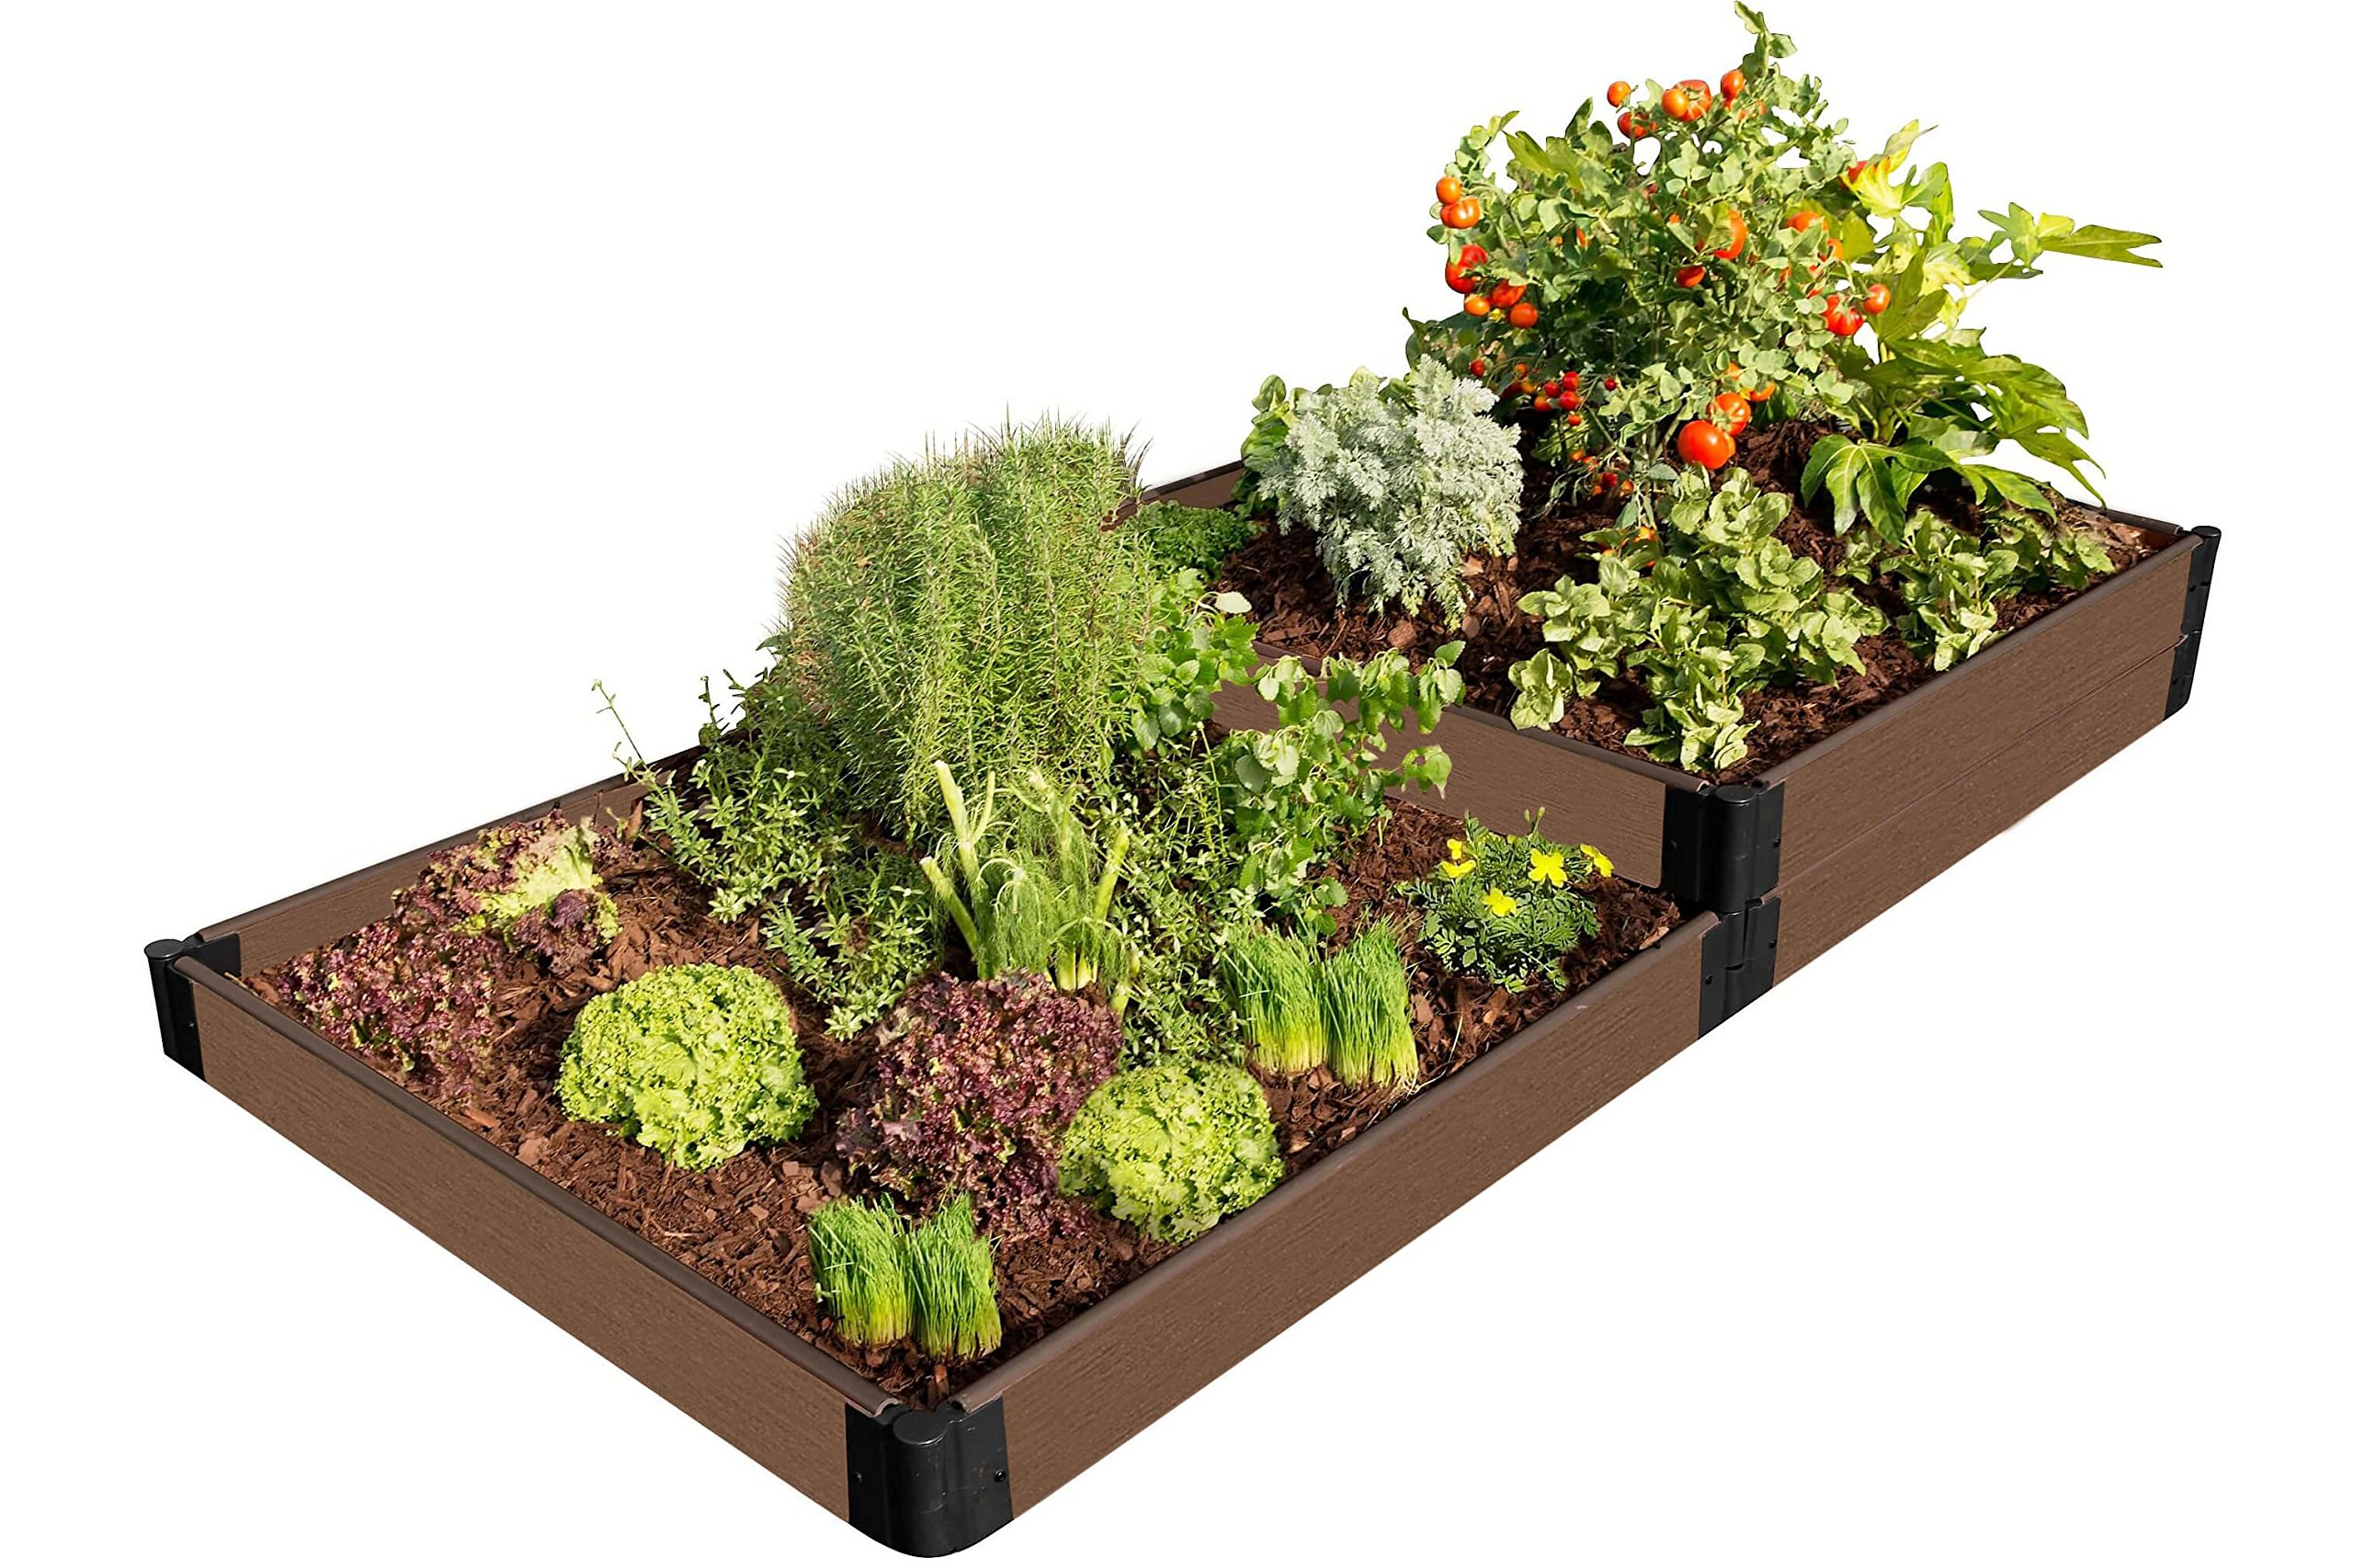 Frame It All 300001428 Raised Bed, Uptown Brown